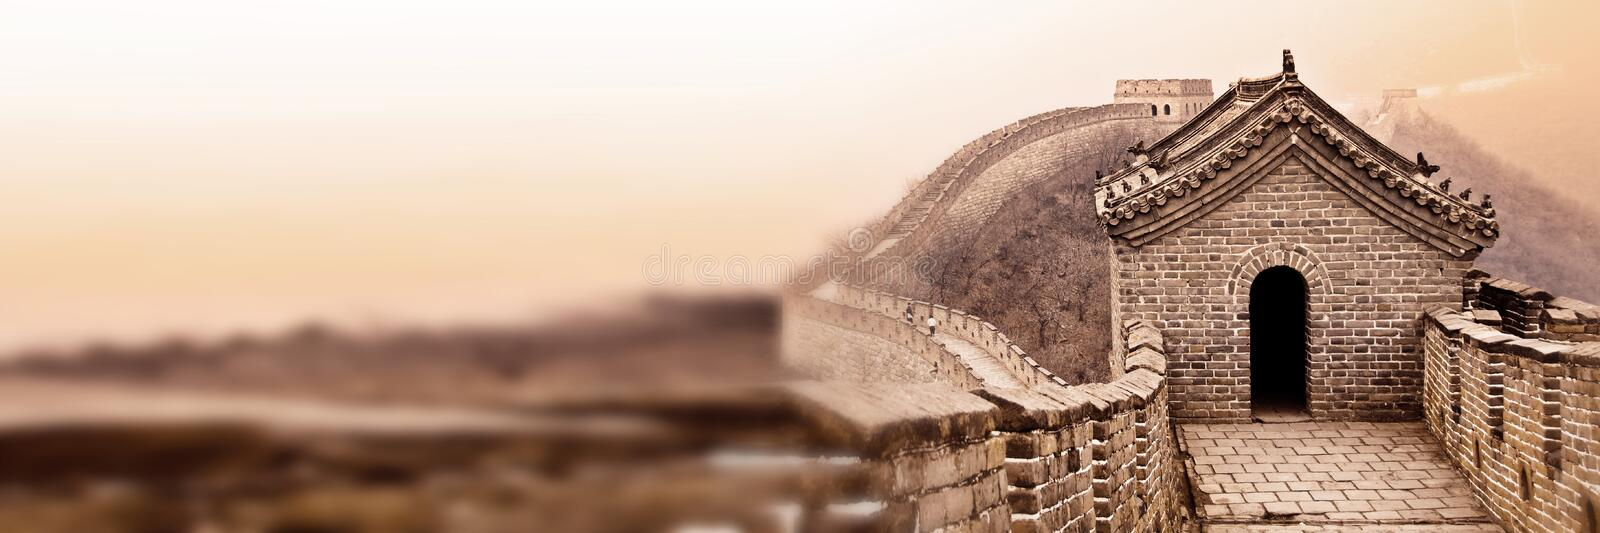 Great wall of China near Beijing panoramic banner royalty free stock images